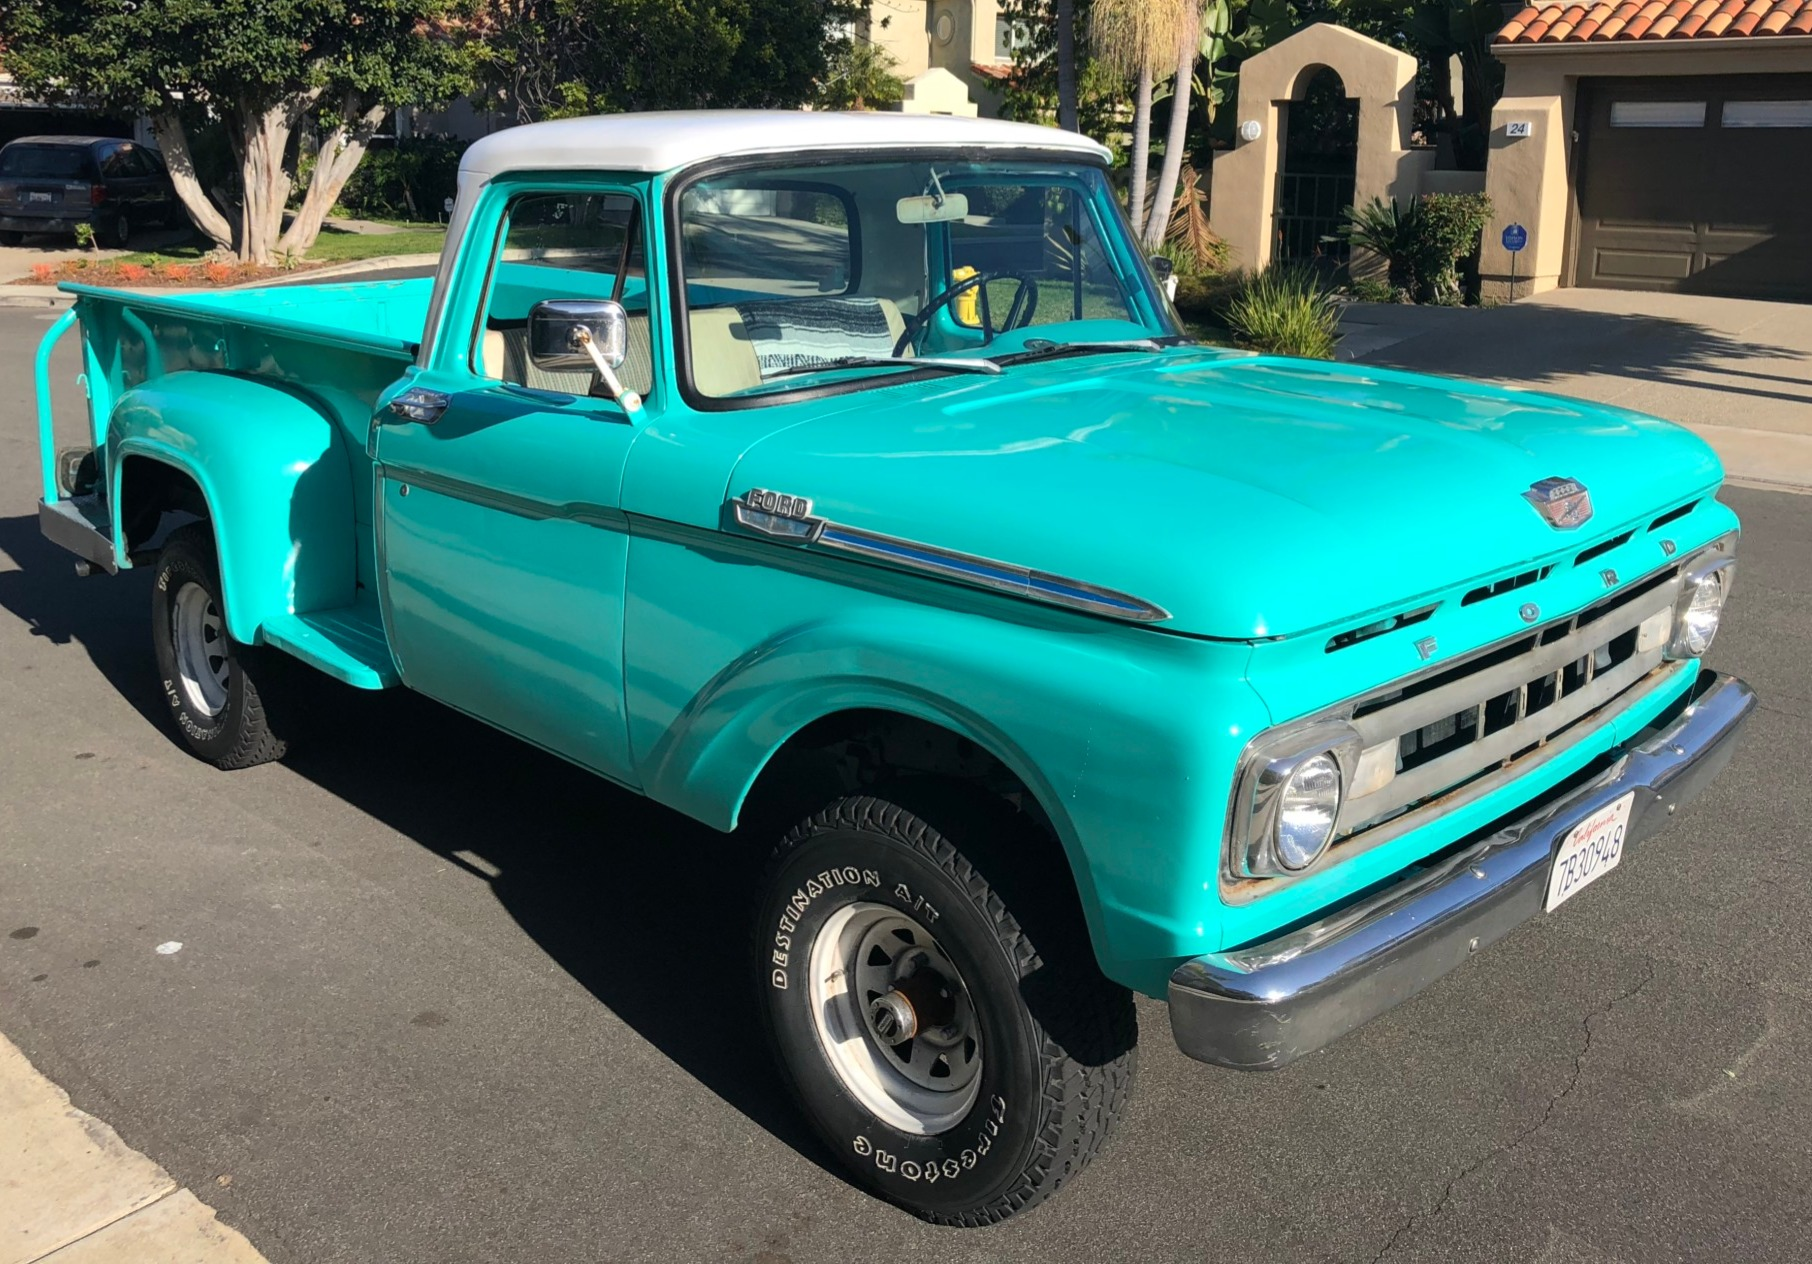 hight resolution of 1961 ford f 100 4x4 4 speed for sale on bat auctions closed on december 26 2018 lot 15 142 bring a trailer